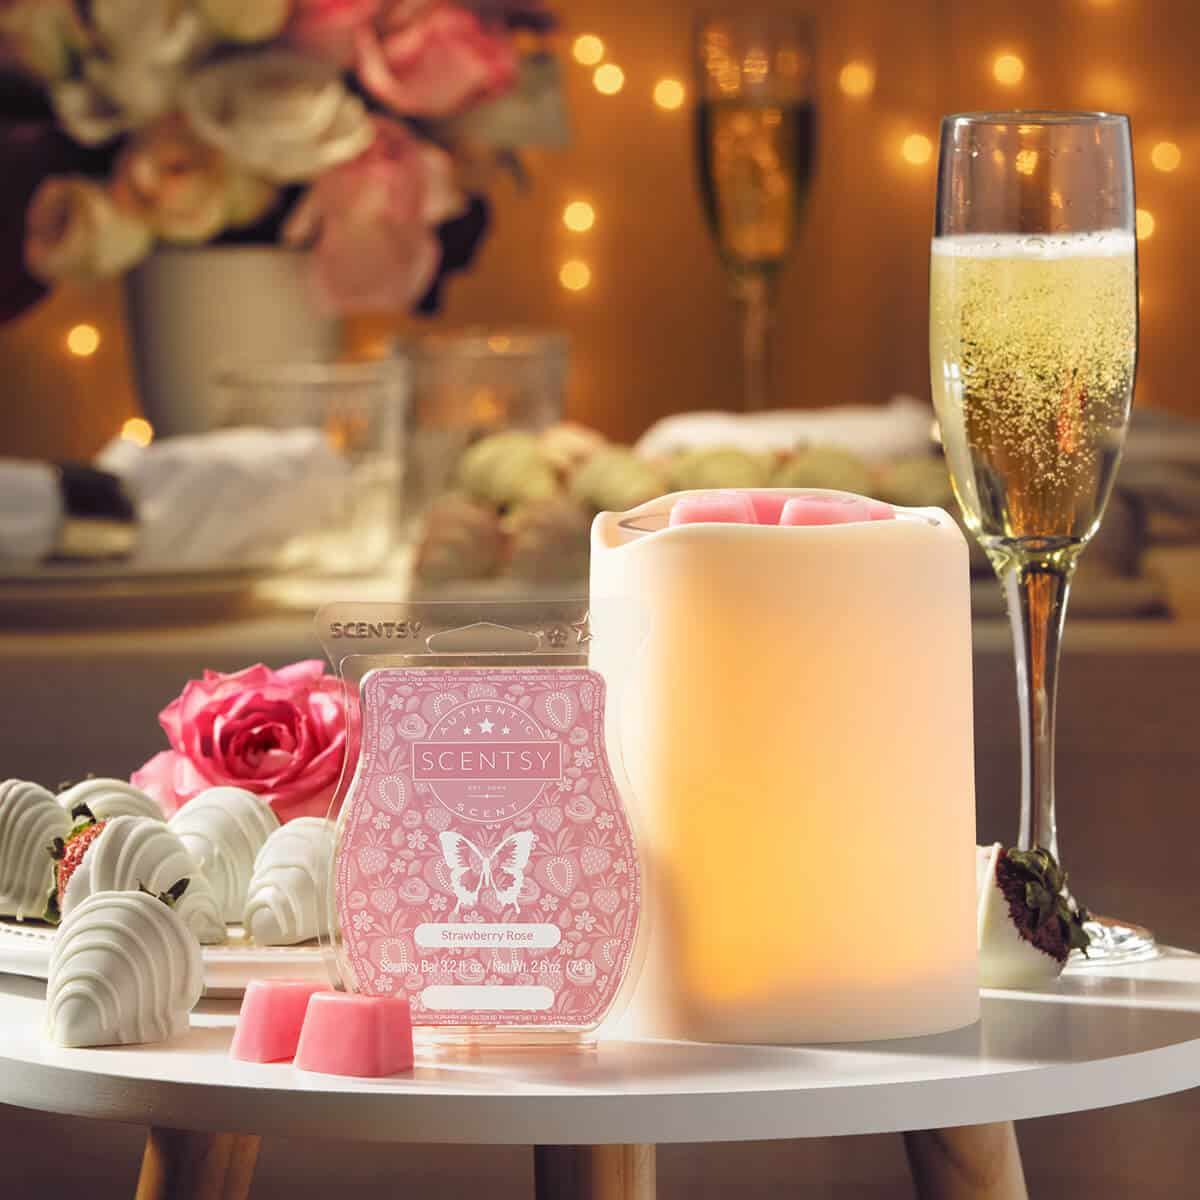 BY THE CANDLELIGHT SCENTSY WARMER